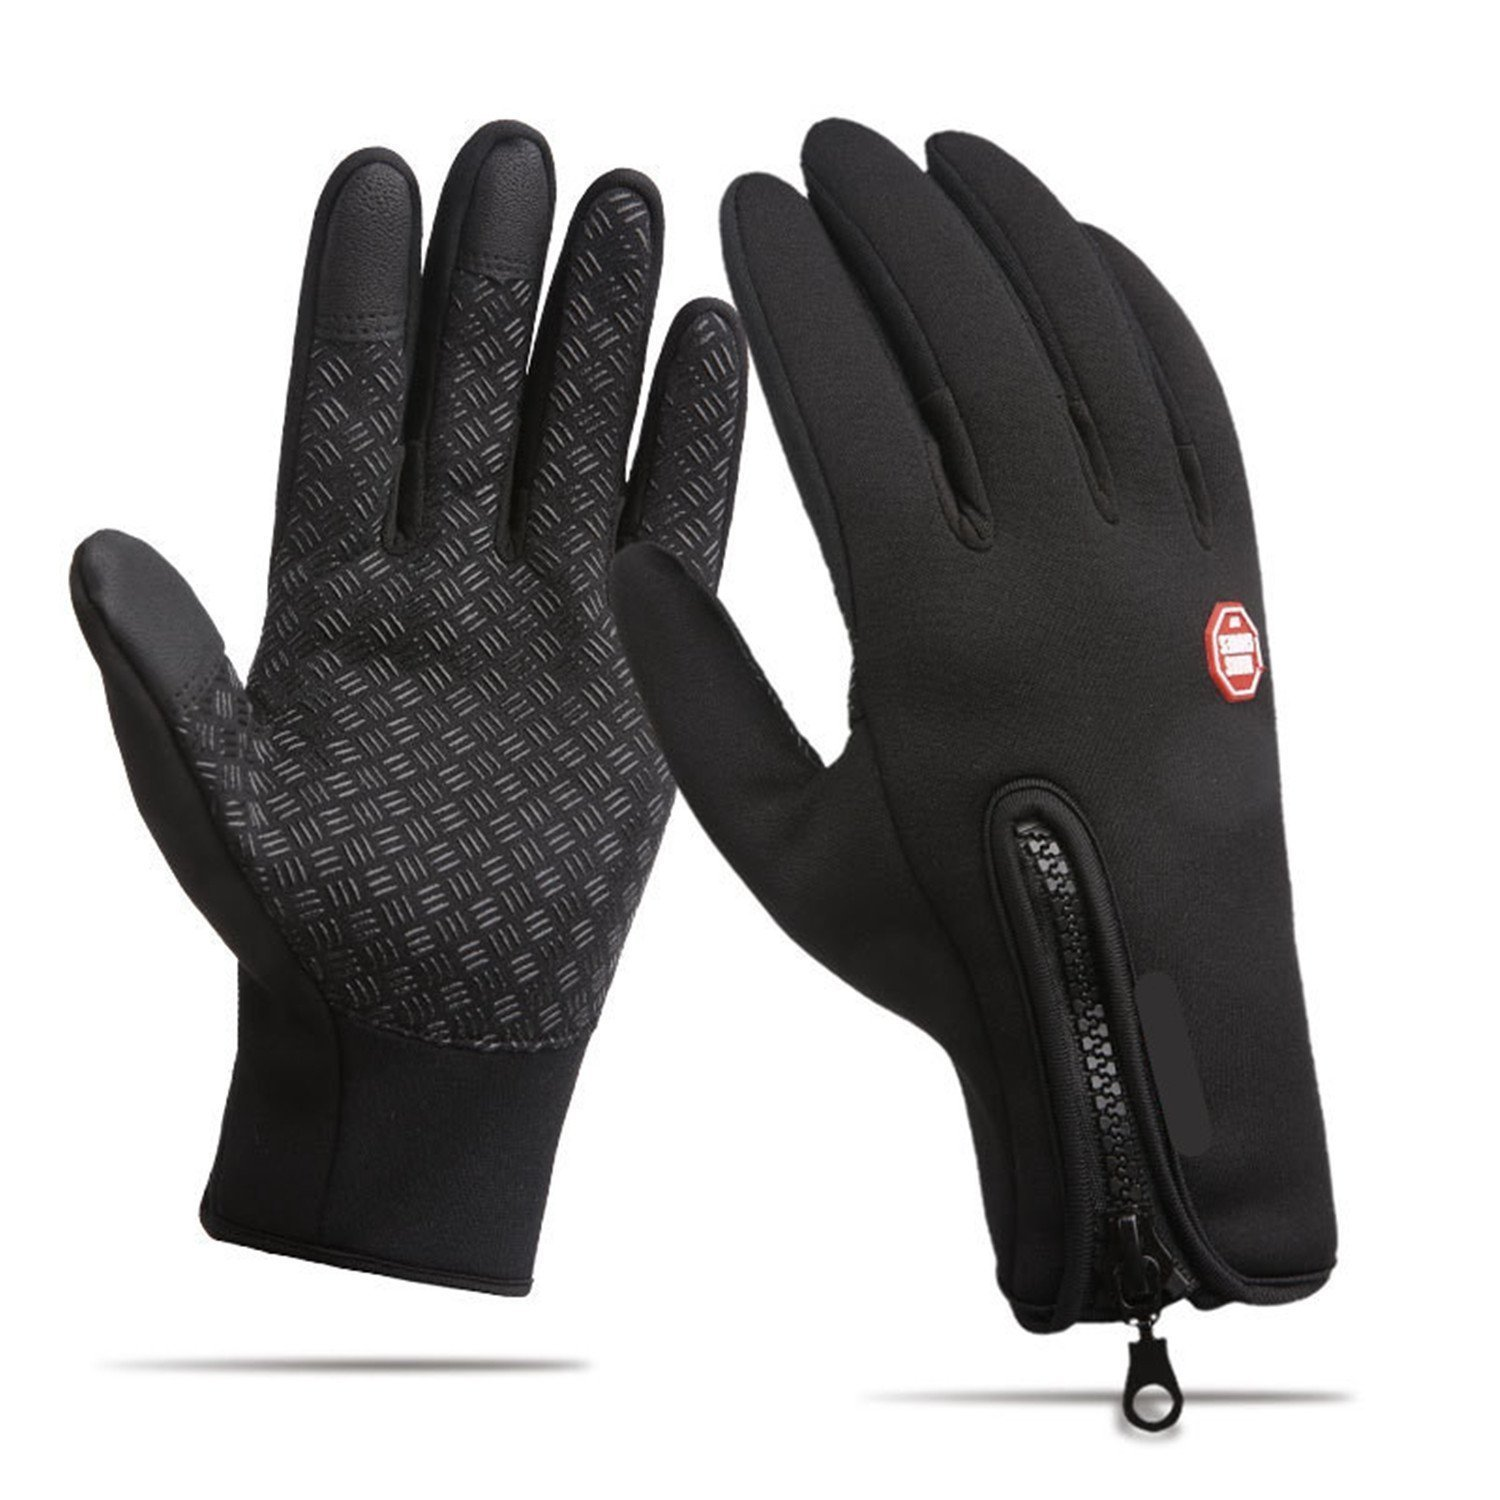 Anquier Cycling Gloves For Women